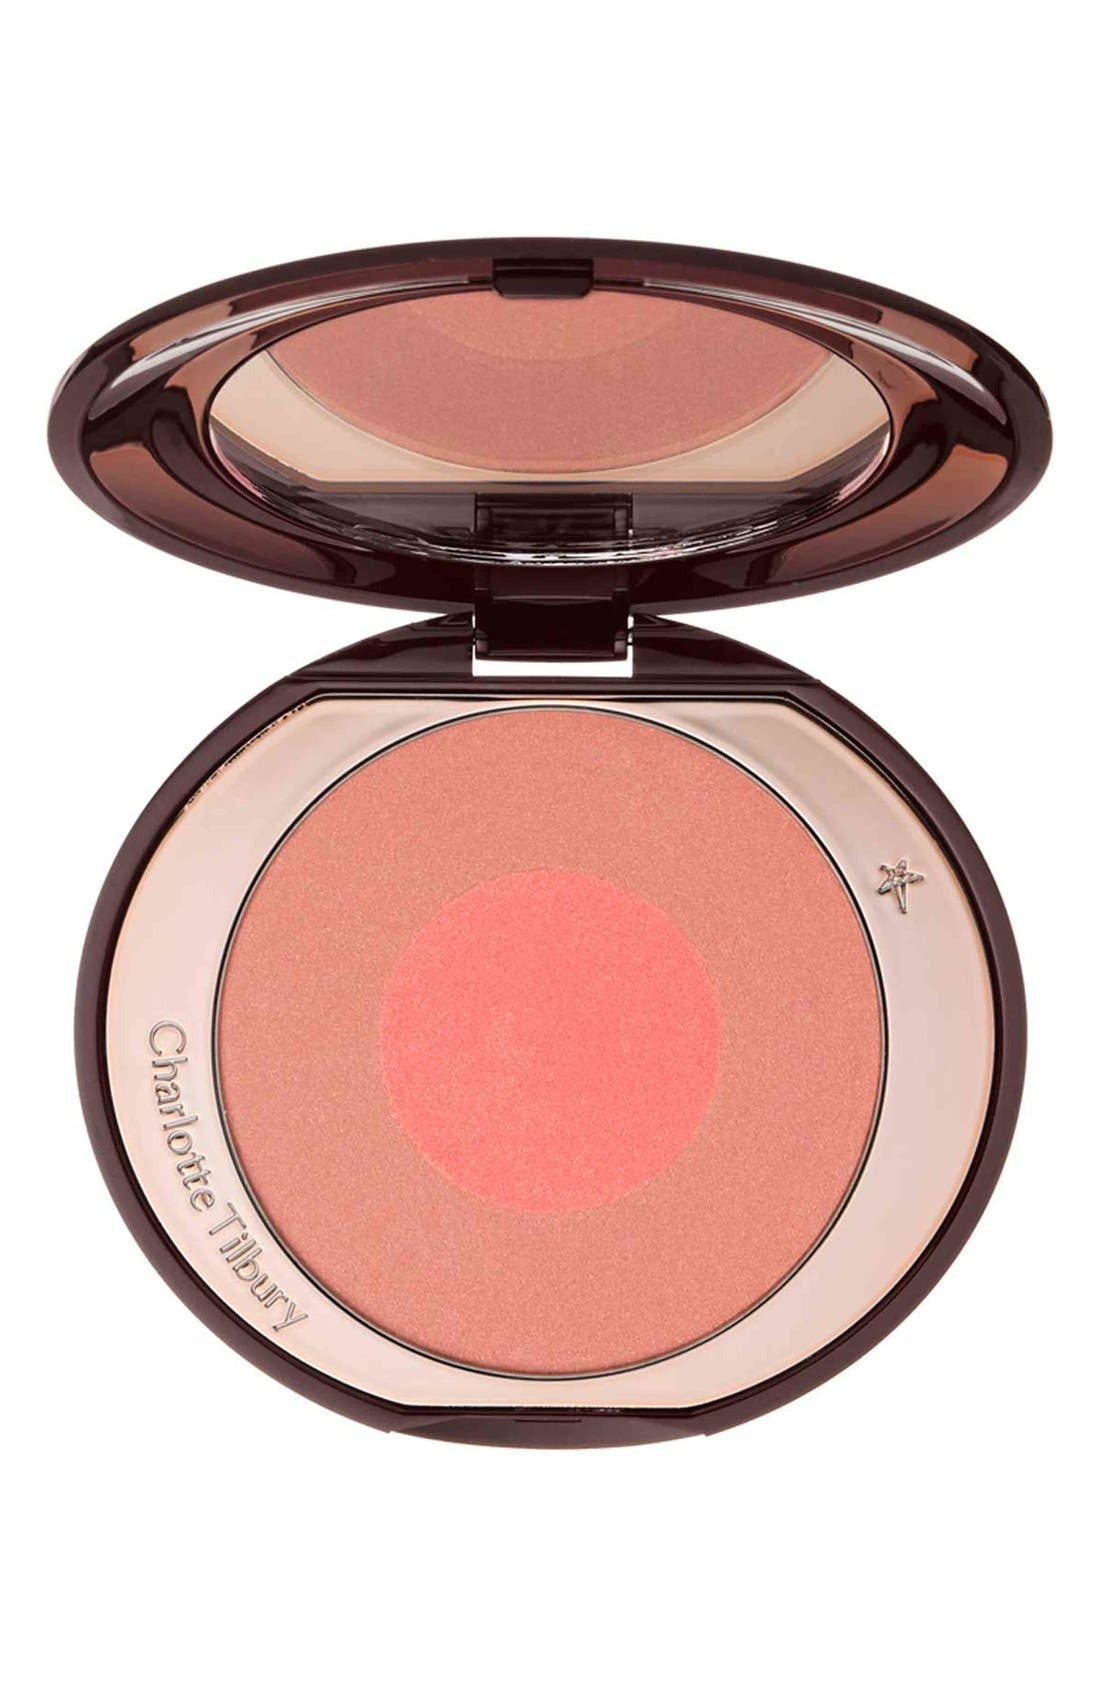 Charlotte Tilbury 'Cheek to Chic' Swish & Pop Blush